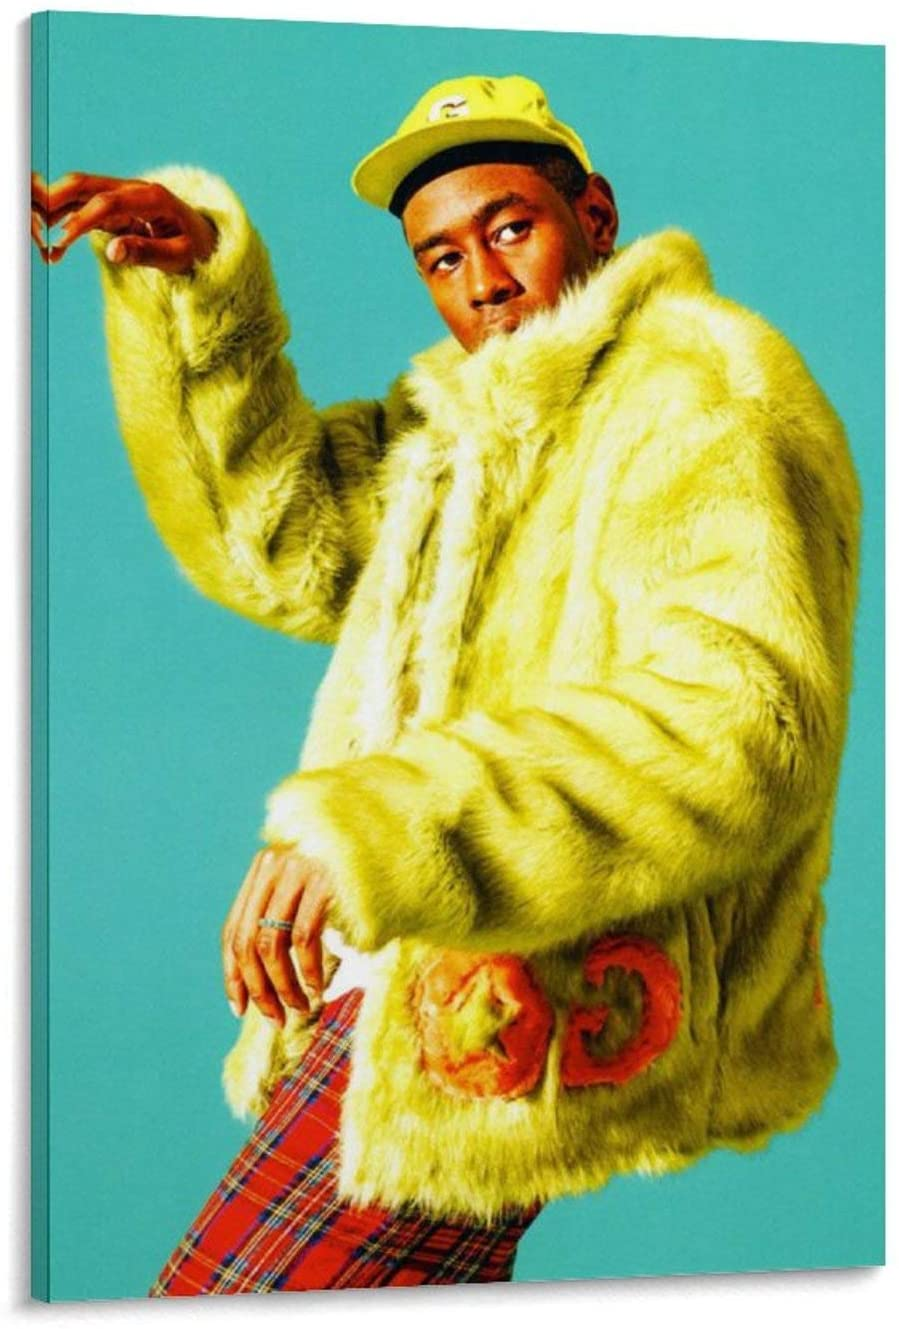 Tyler The Creator Yellow Poster Decorative Painting Canvas Wall Art Living Room Posters Bedroom Painting 20x30inch(50x75cm)